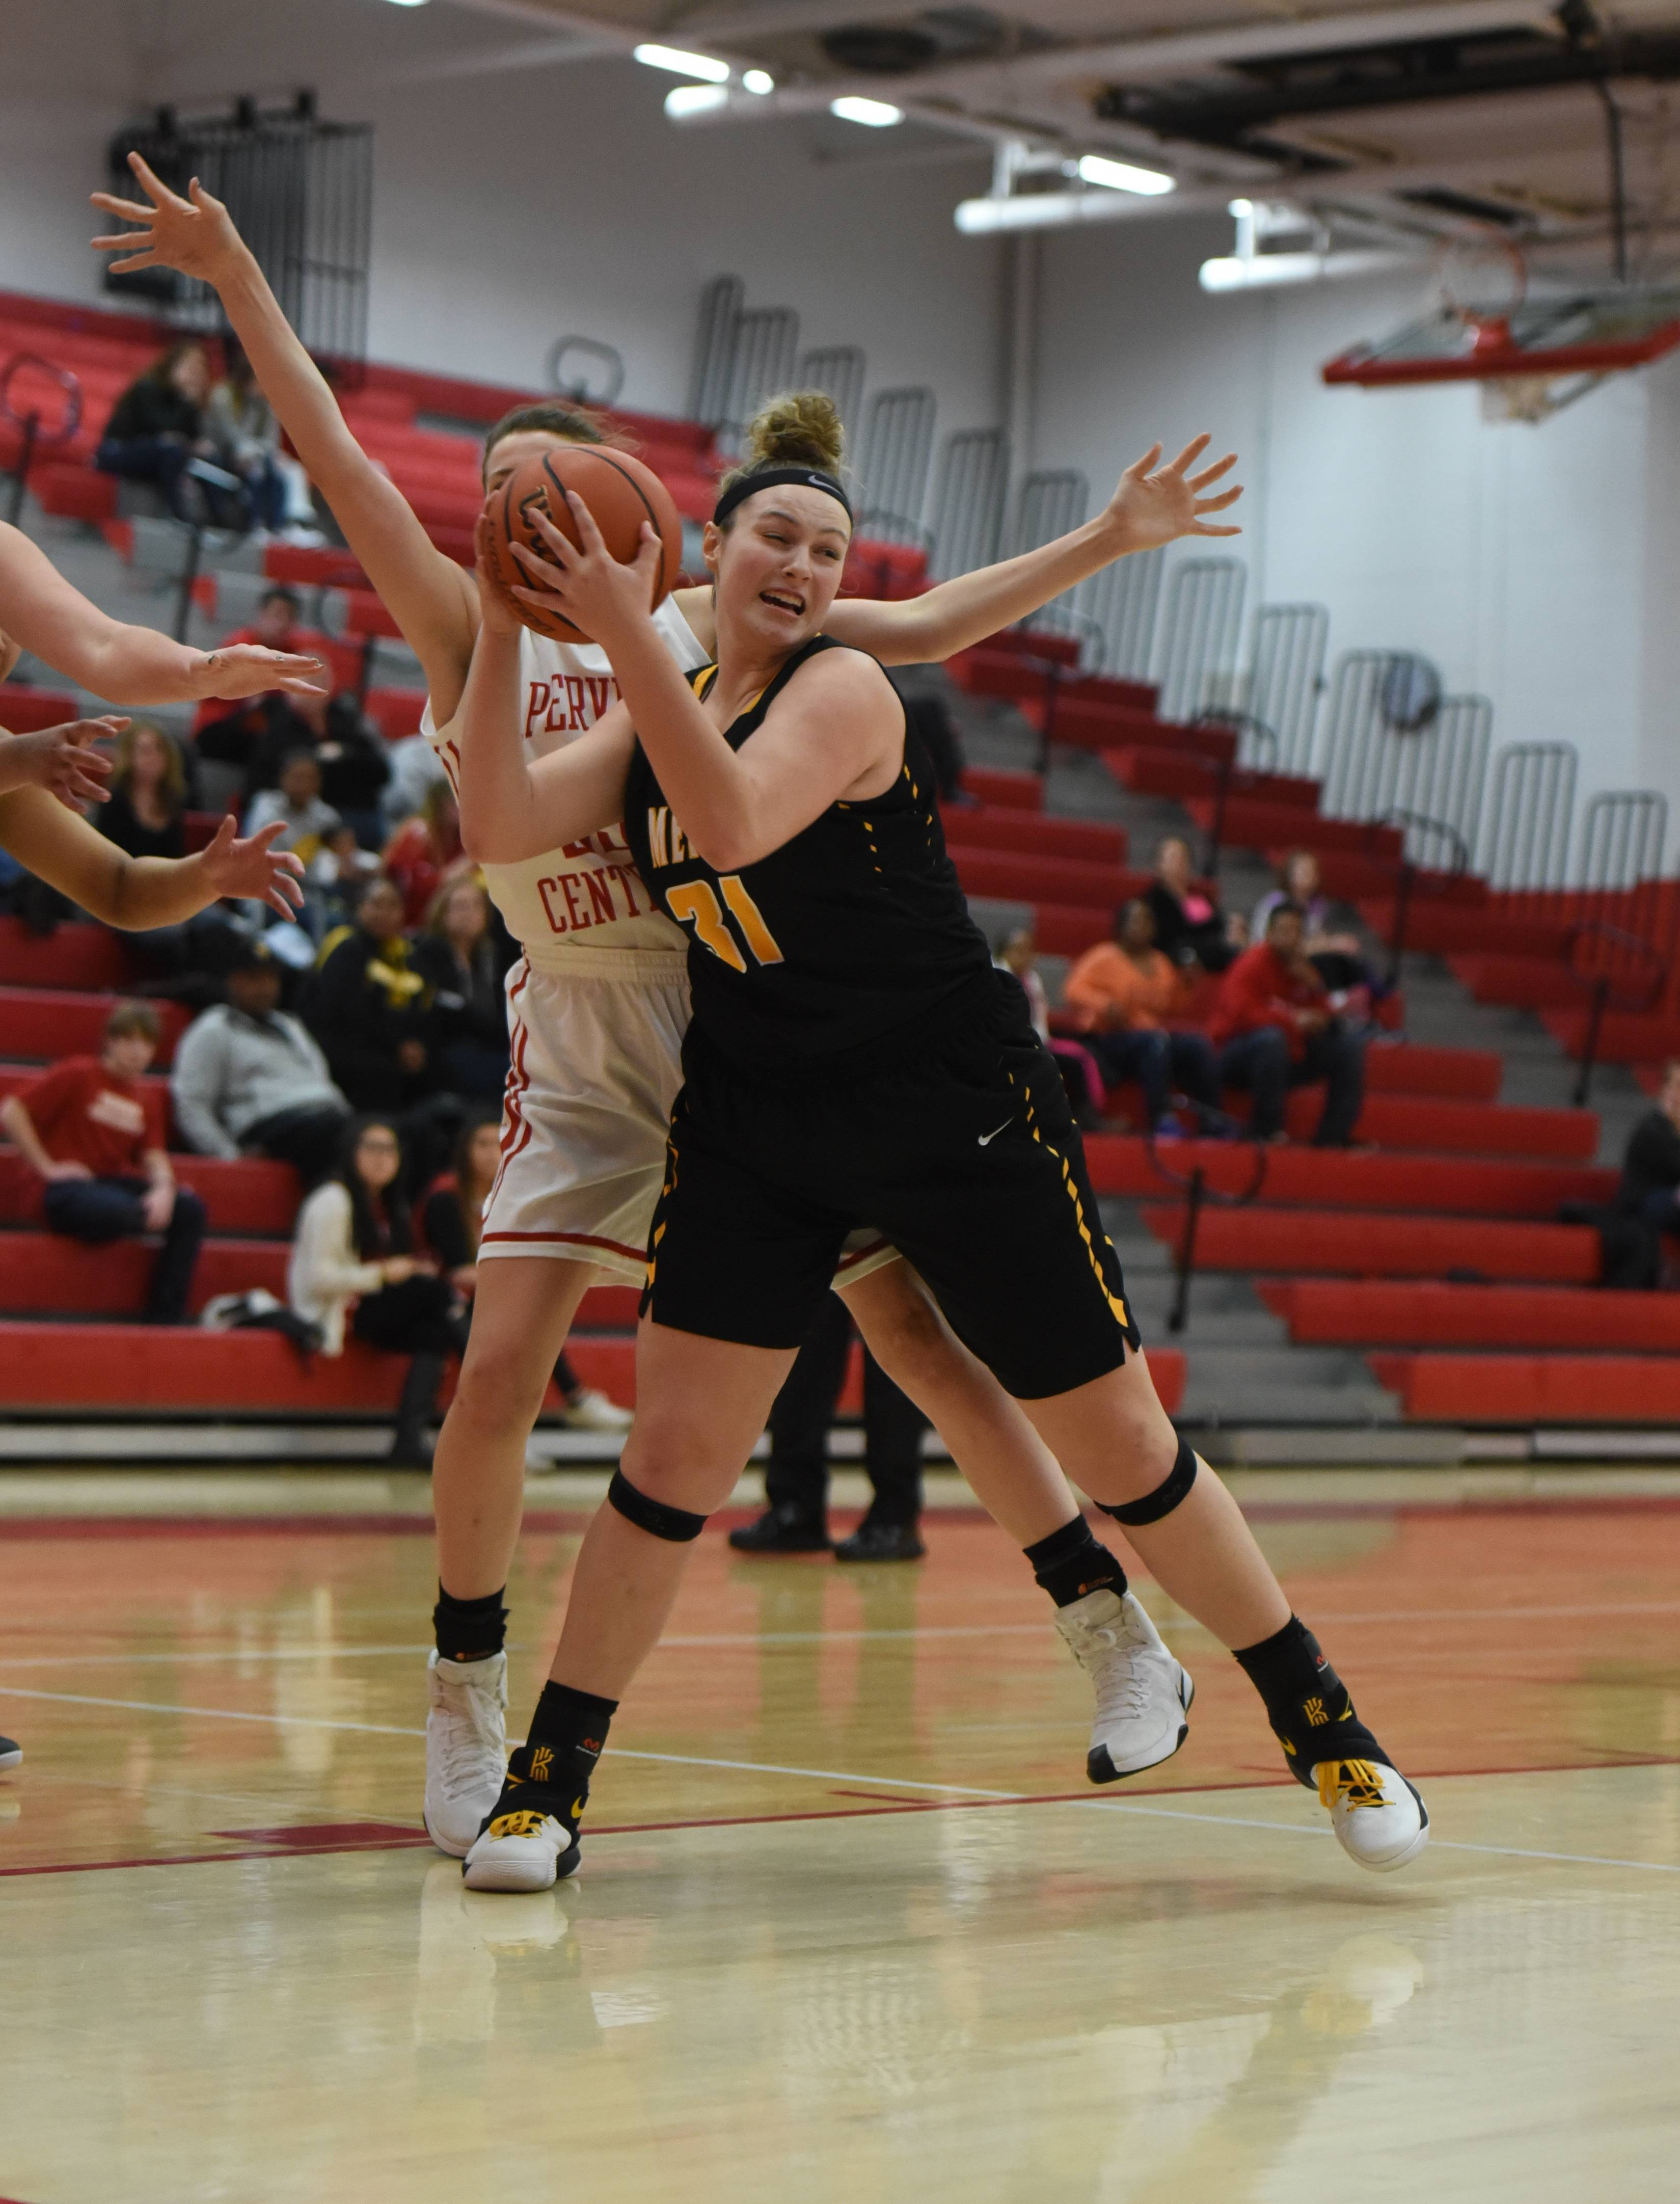 Images from the Metea Valley at Naperville Central girls basketball game on January 19, 2017.